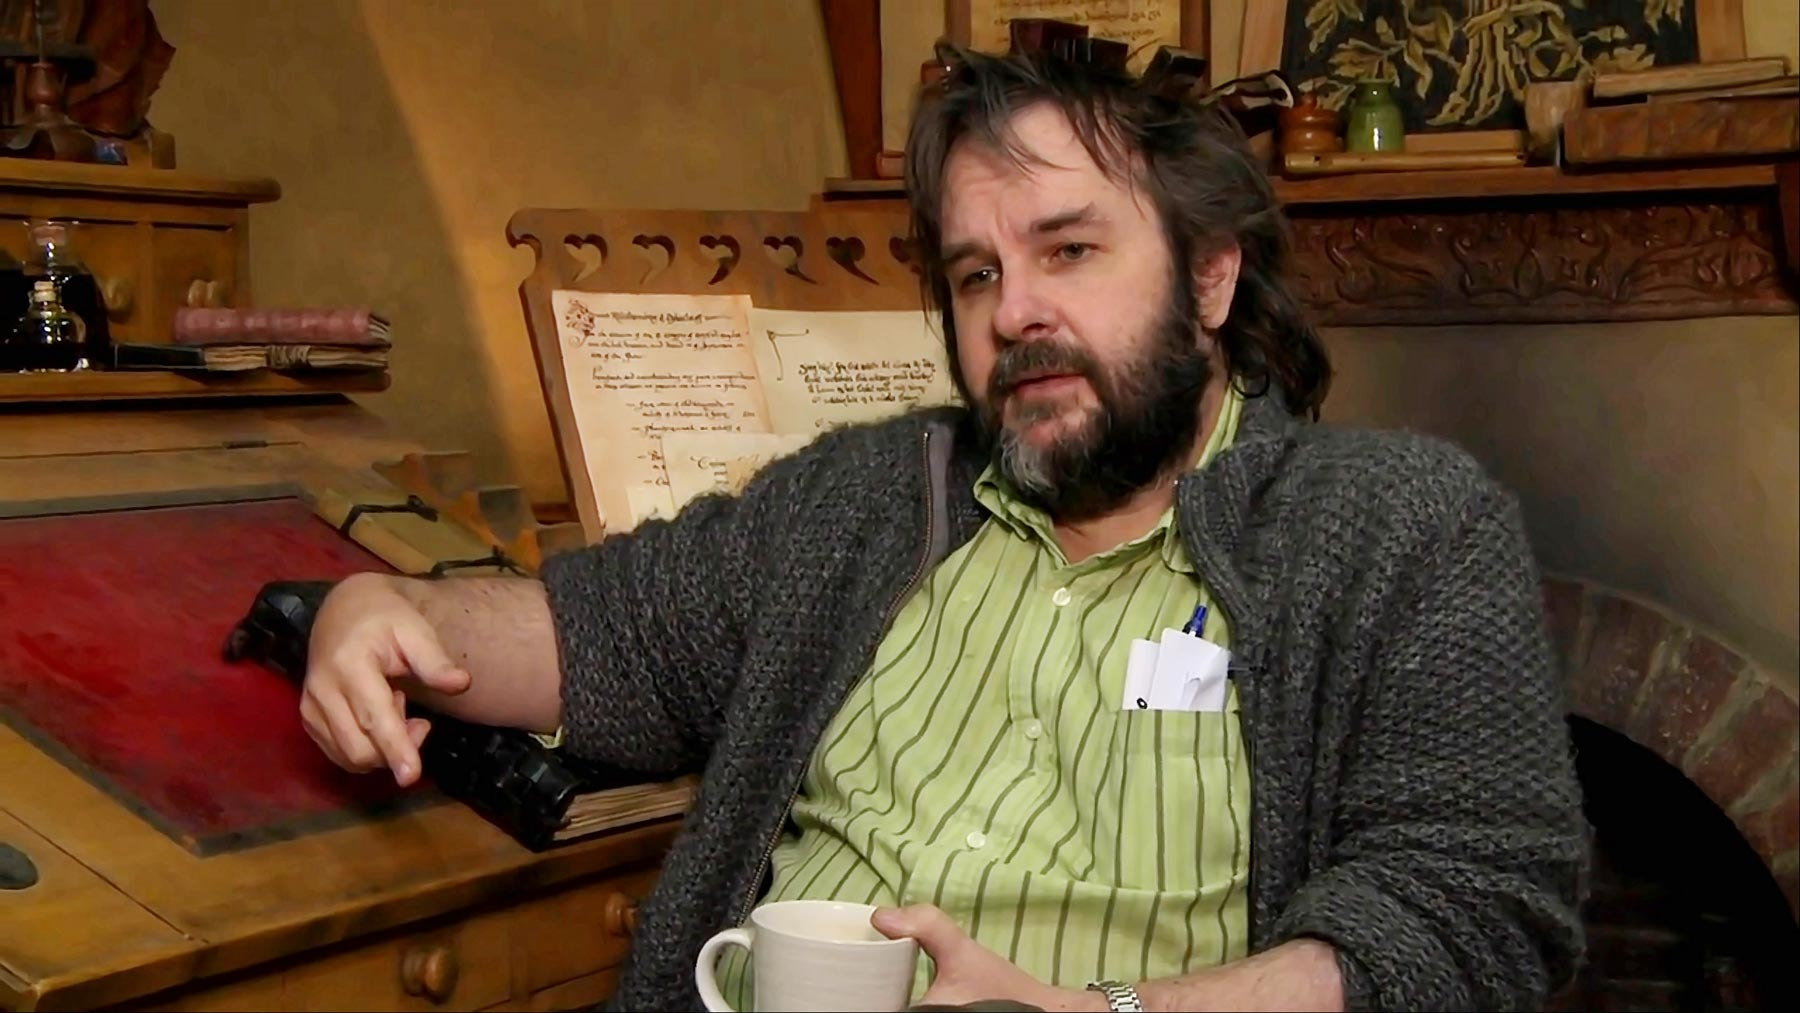 The Hobbit: Peter Jackson's Video Diary From the Set ...